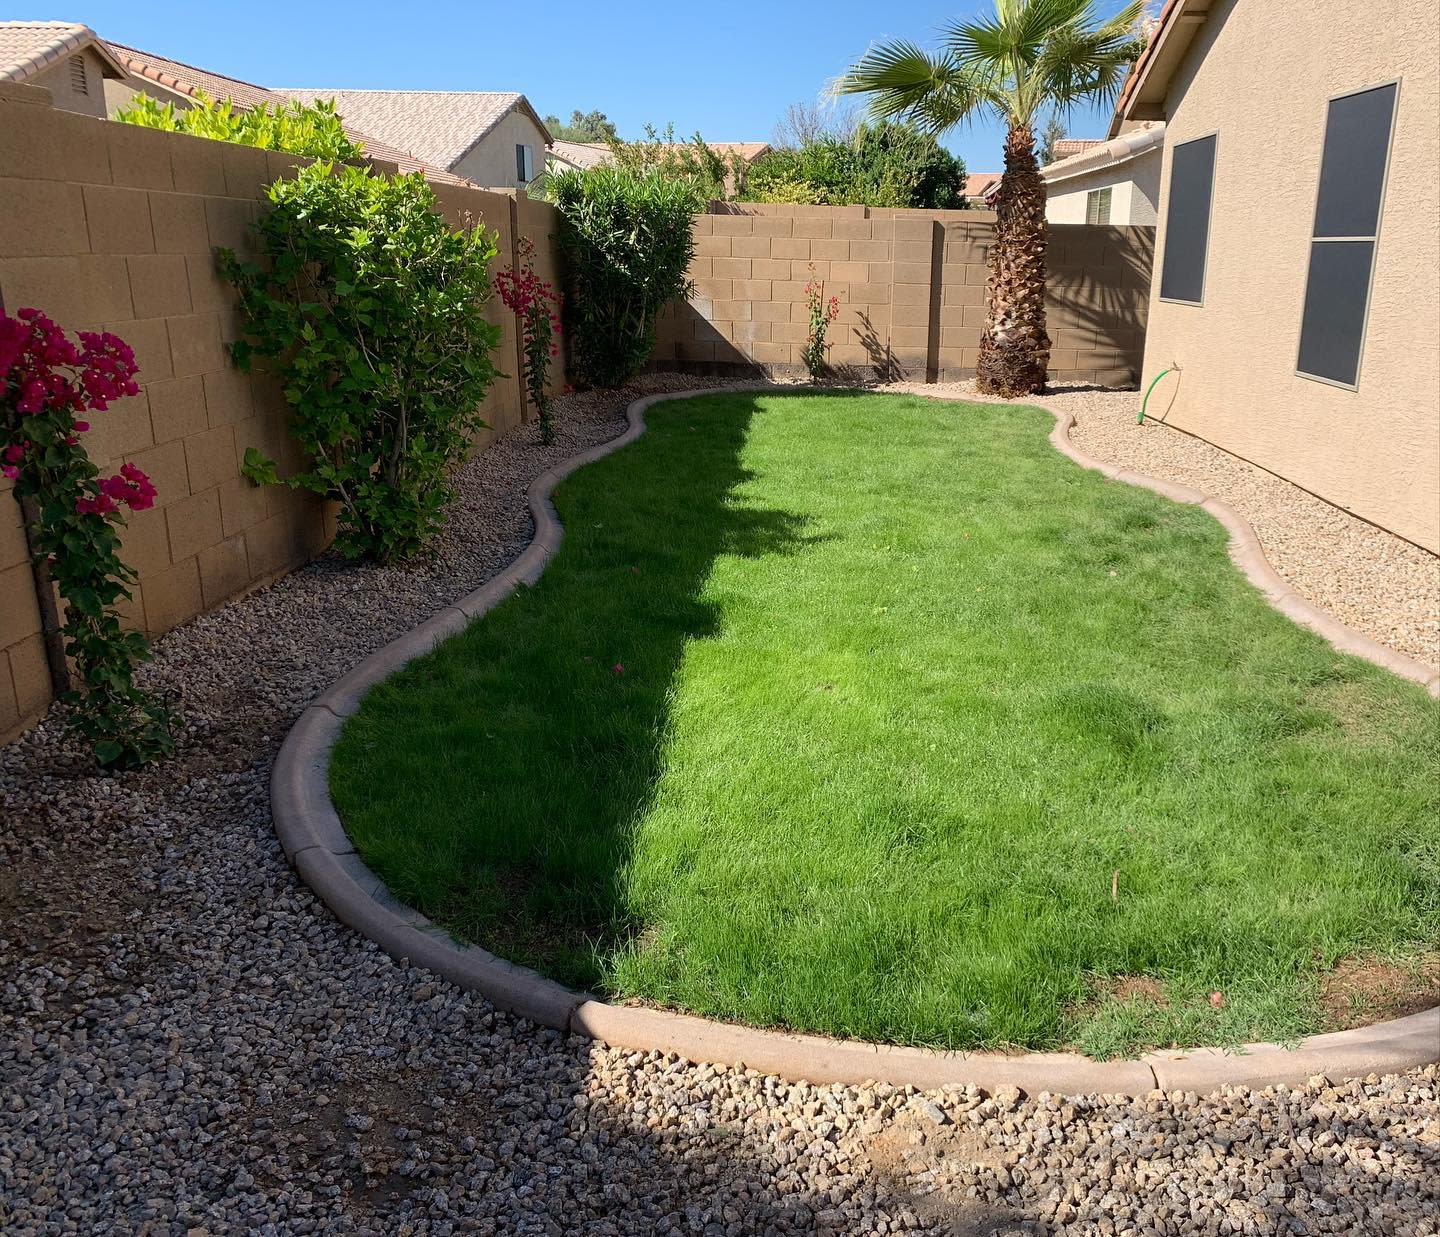 Simple Low Maintenance Landscaping Ideas -ndseeley